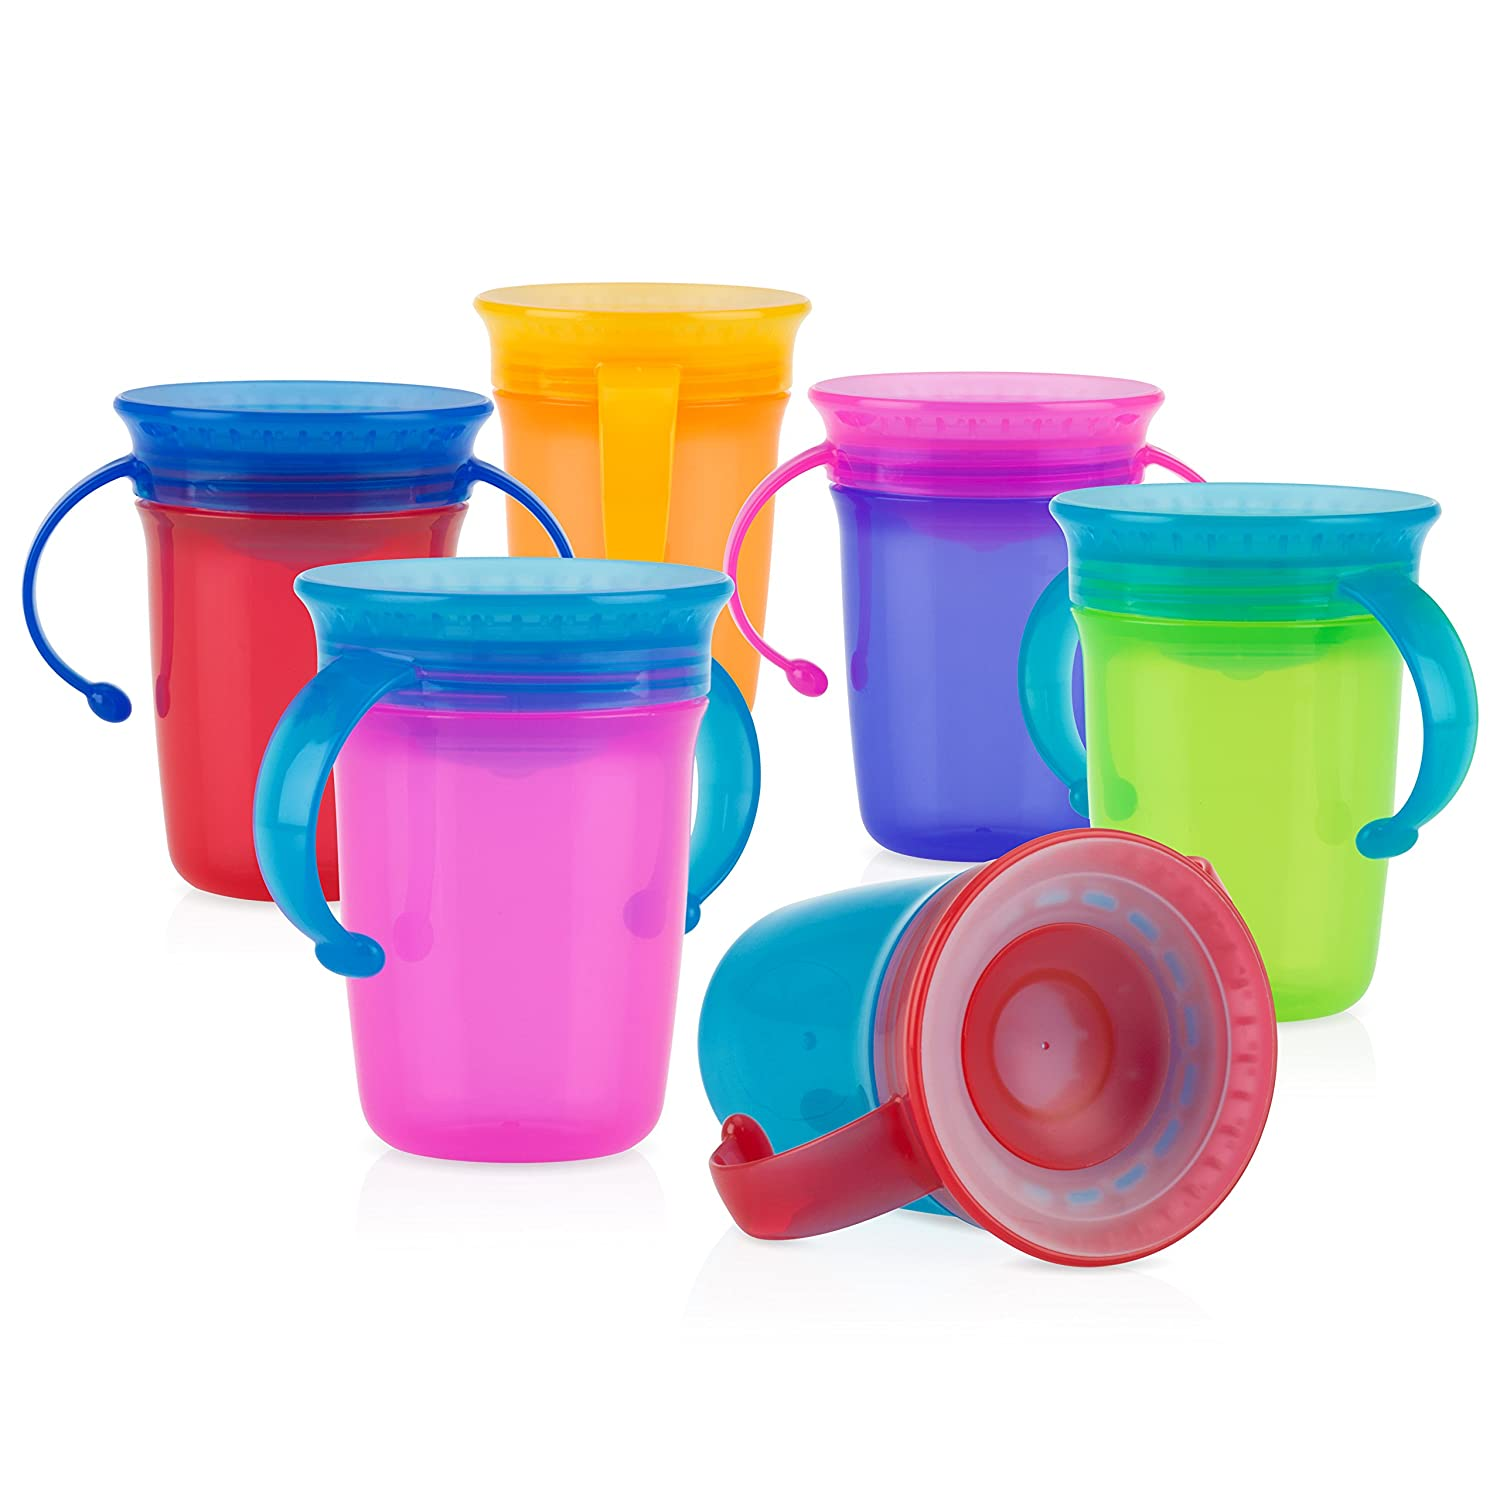 Nuby 1pk No Spill Fixed price for sale 2-Handle 360 Max 42% OFF Degree Va Colors - Cup May Wonder